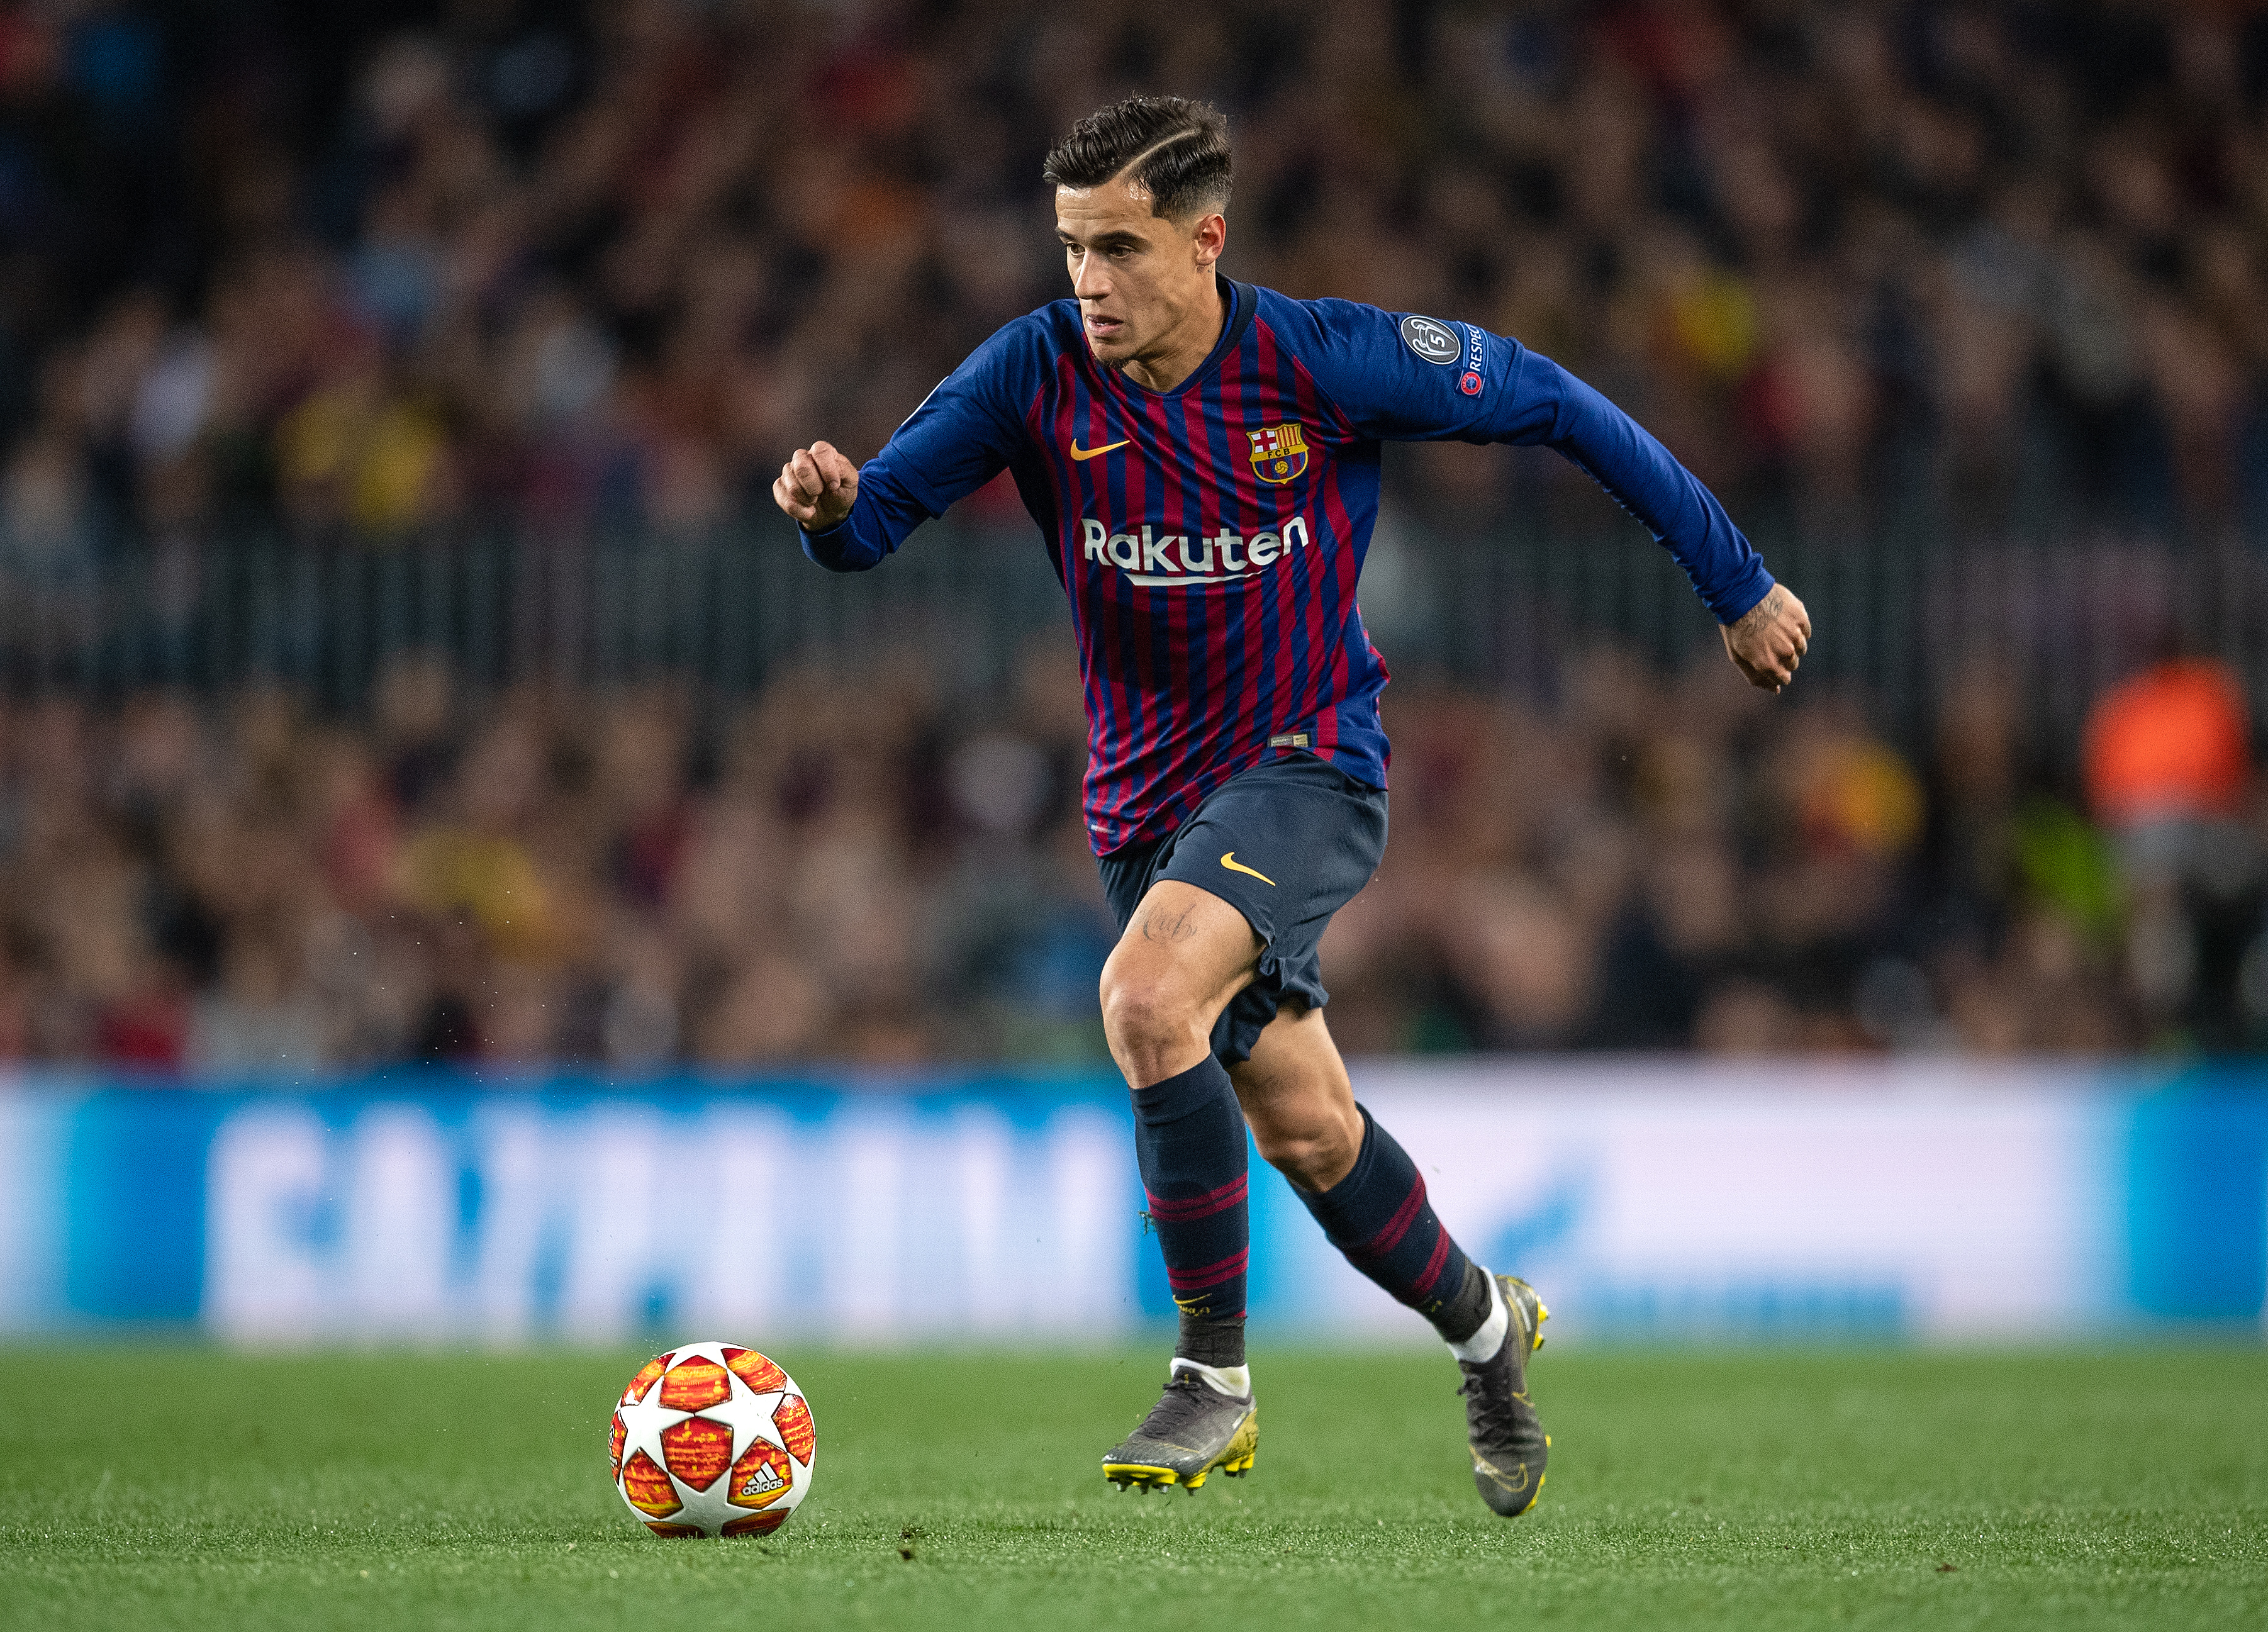 Coutinho is not interested in a move to Tottenham. (Photo by Matthias Hangst/Getty Images)